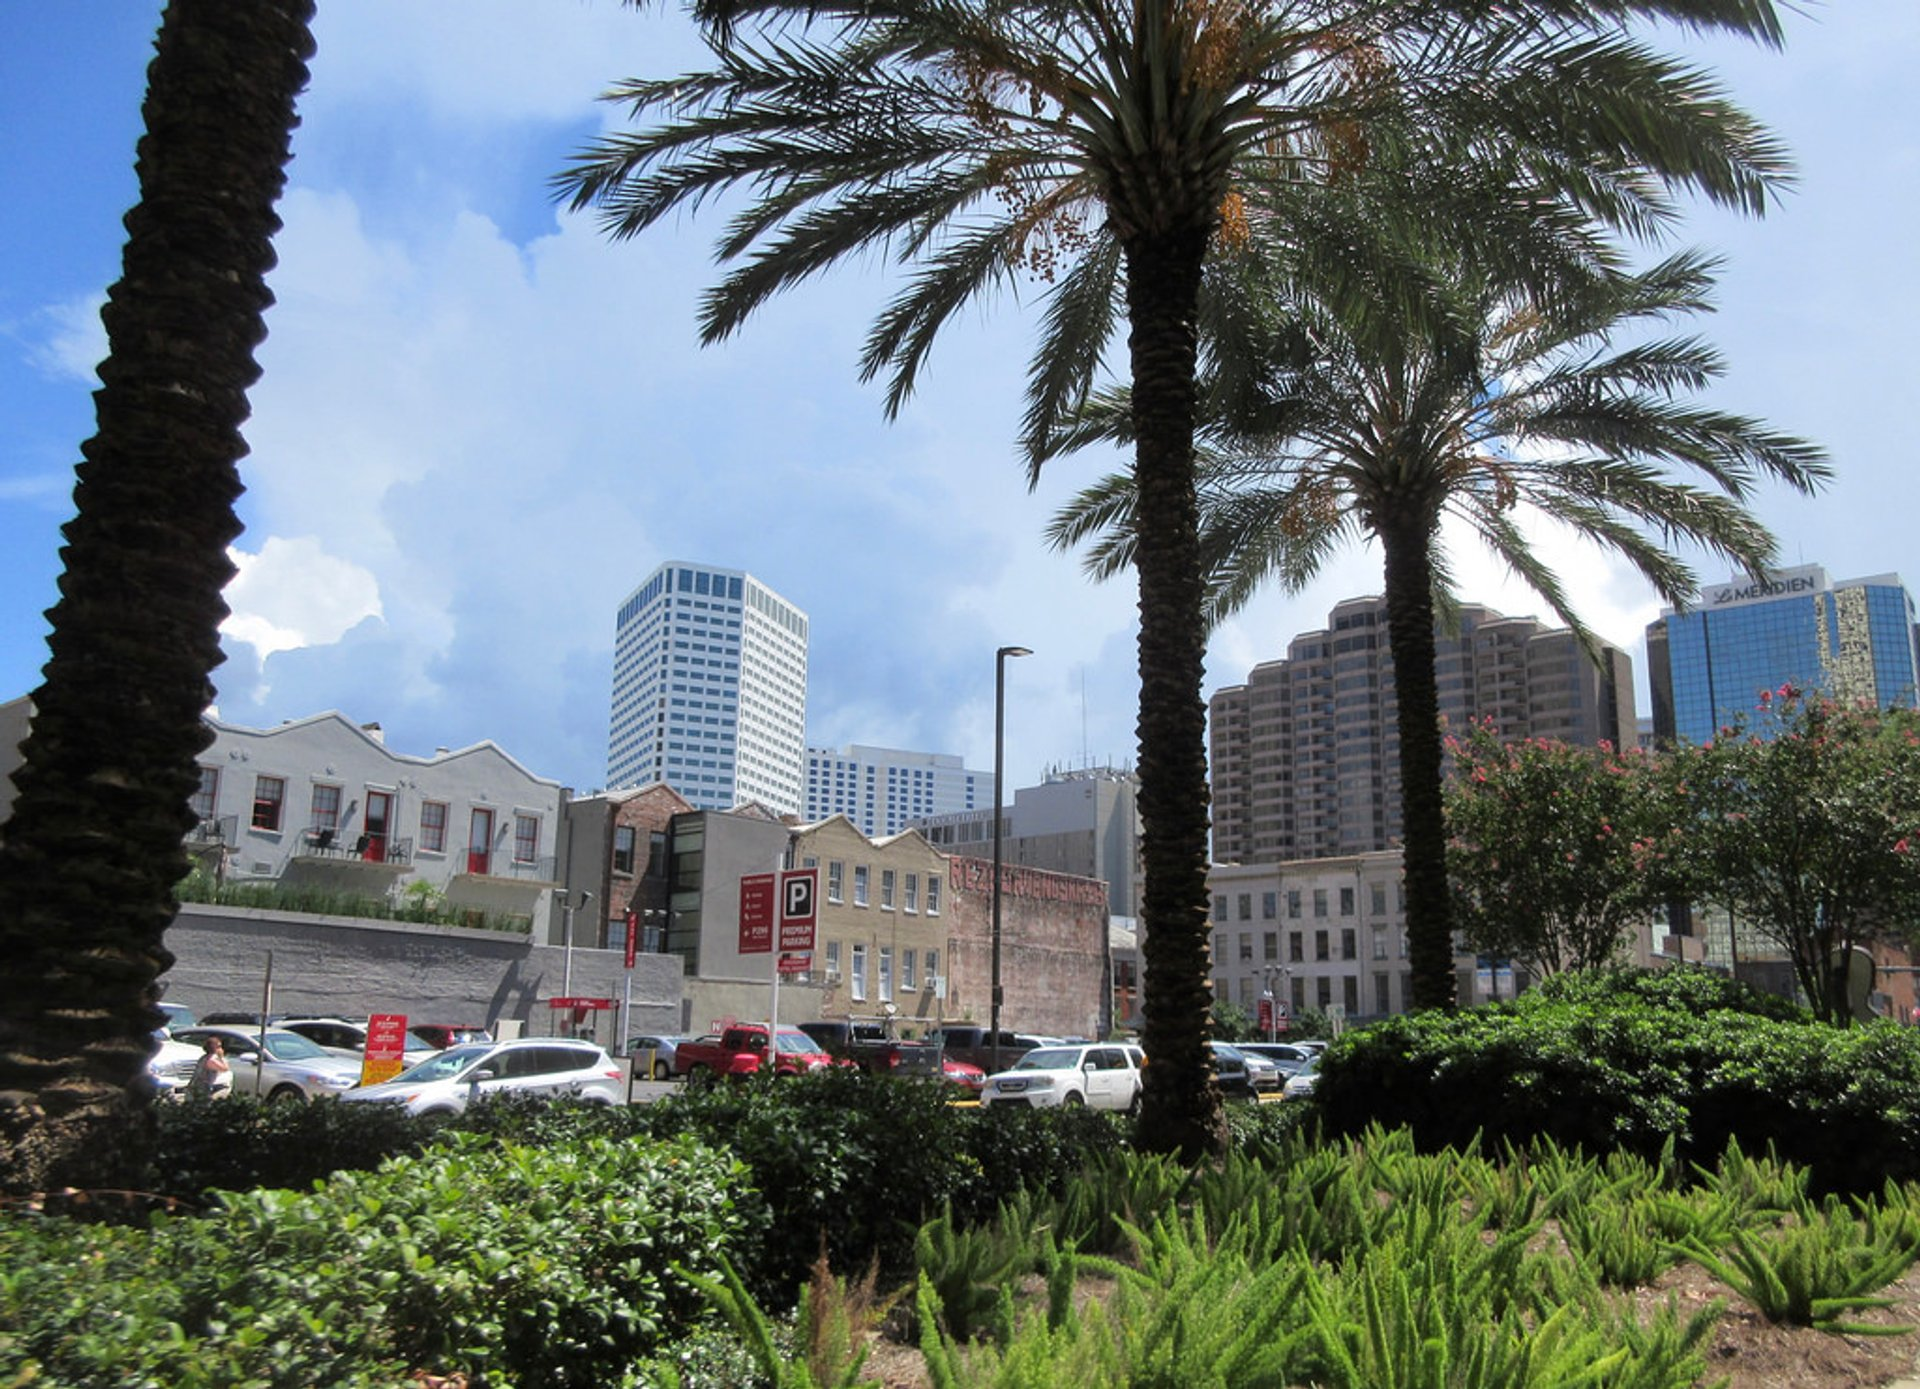 Summer in New Orleans 2020 - Best Time